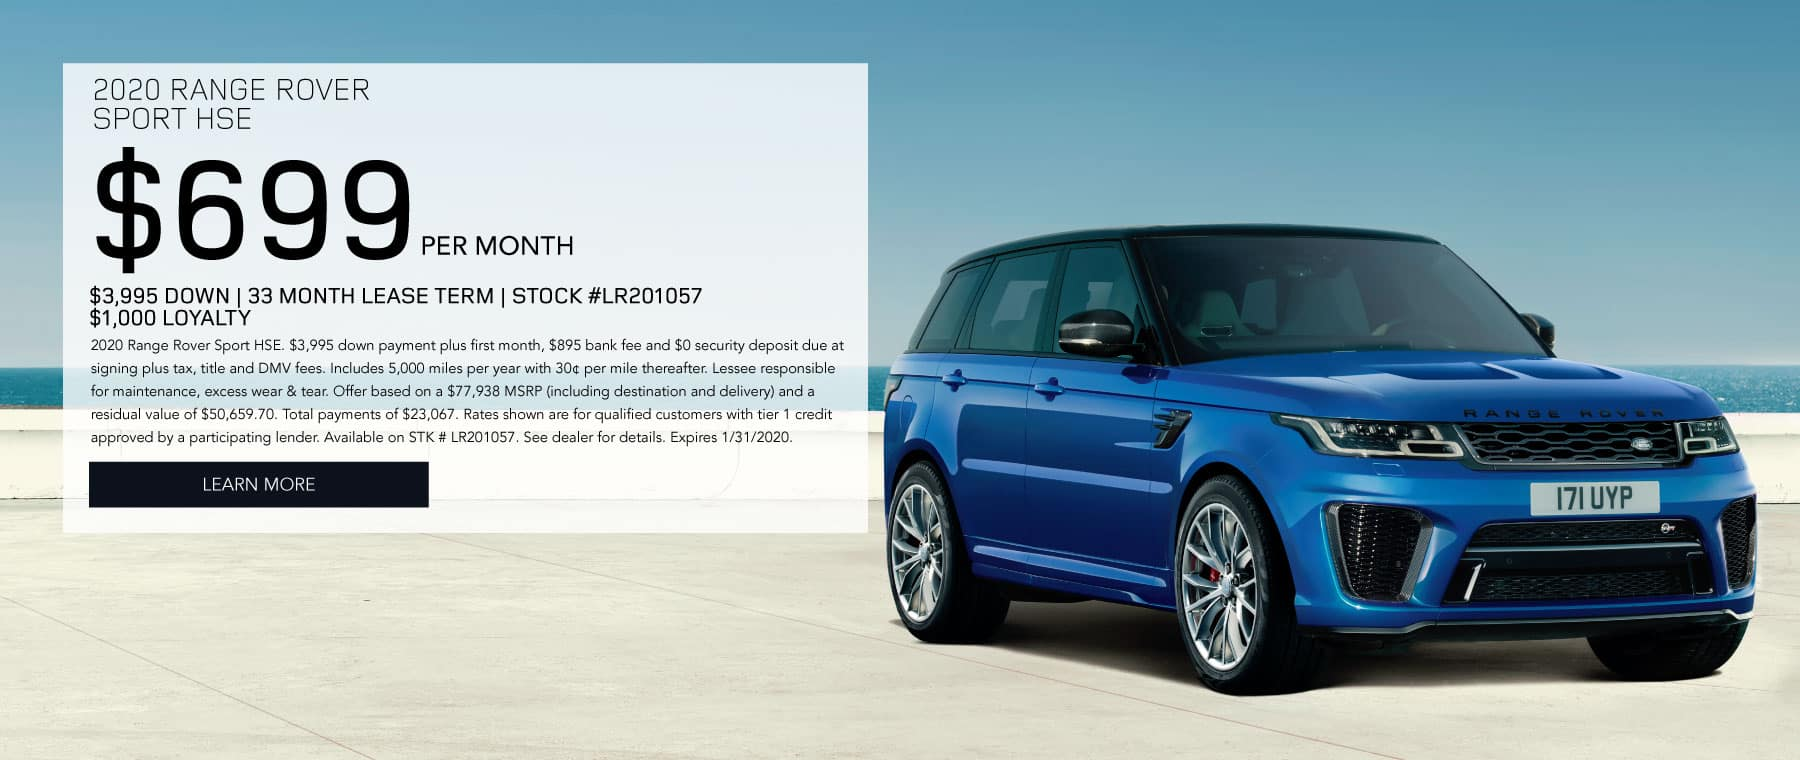 2020 RANGE ROVER SPORT HSE $699 PER MONTH $3,995 DOWN 33 MONTH LEASE TERM STOCK #LR201057 $1,000 LOYALTY 2020 Range Rover Sport HSE. $3,995 down payment plus first month, $895 bank fee and $0 security deposit due at signing plus tax, title and DMV fees. Includes 5,000 miles per year with 30¢ per mile thereafter. Lessee responsible for maintenance, excess wear & tear. Offer based on a $77,938 MSRP (including destination and delivery) and a residual value of $50,659.70. Total payments of $23,067. Rates shown are for qualified customers with tier 1 credit approved by a participating lender. Available on STK # LR201057. See dealer for details. Expires 1/31/2020. Click to Learn More. Blue Range Rover Sport on pavement with water in the background